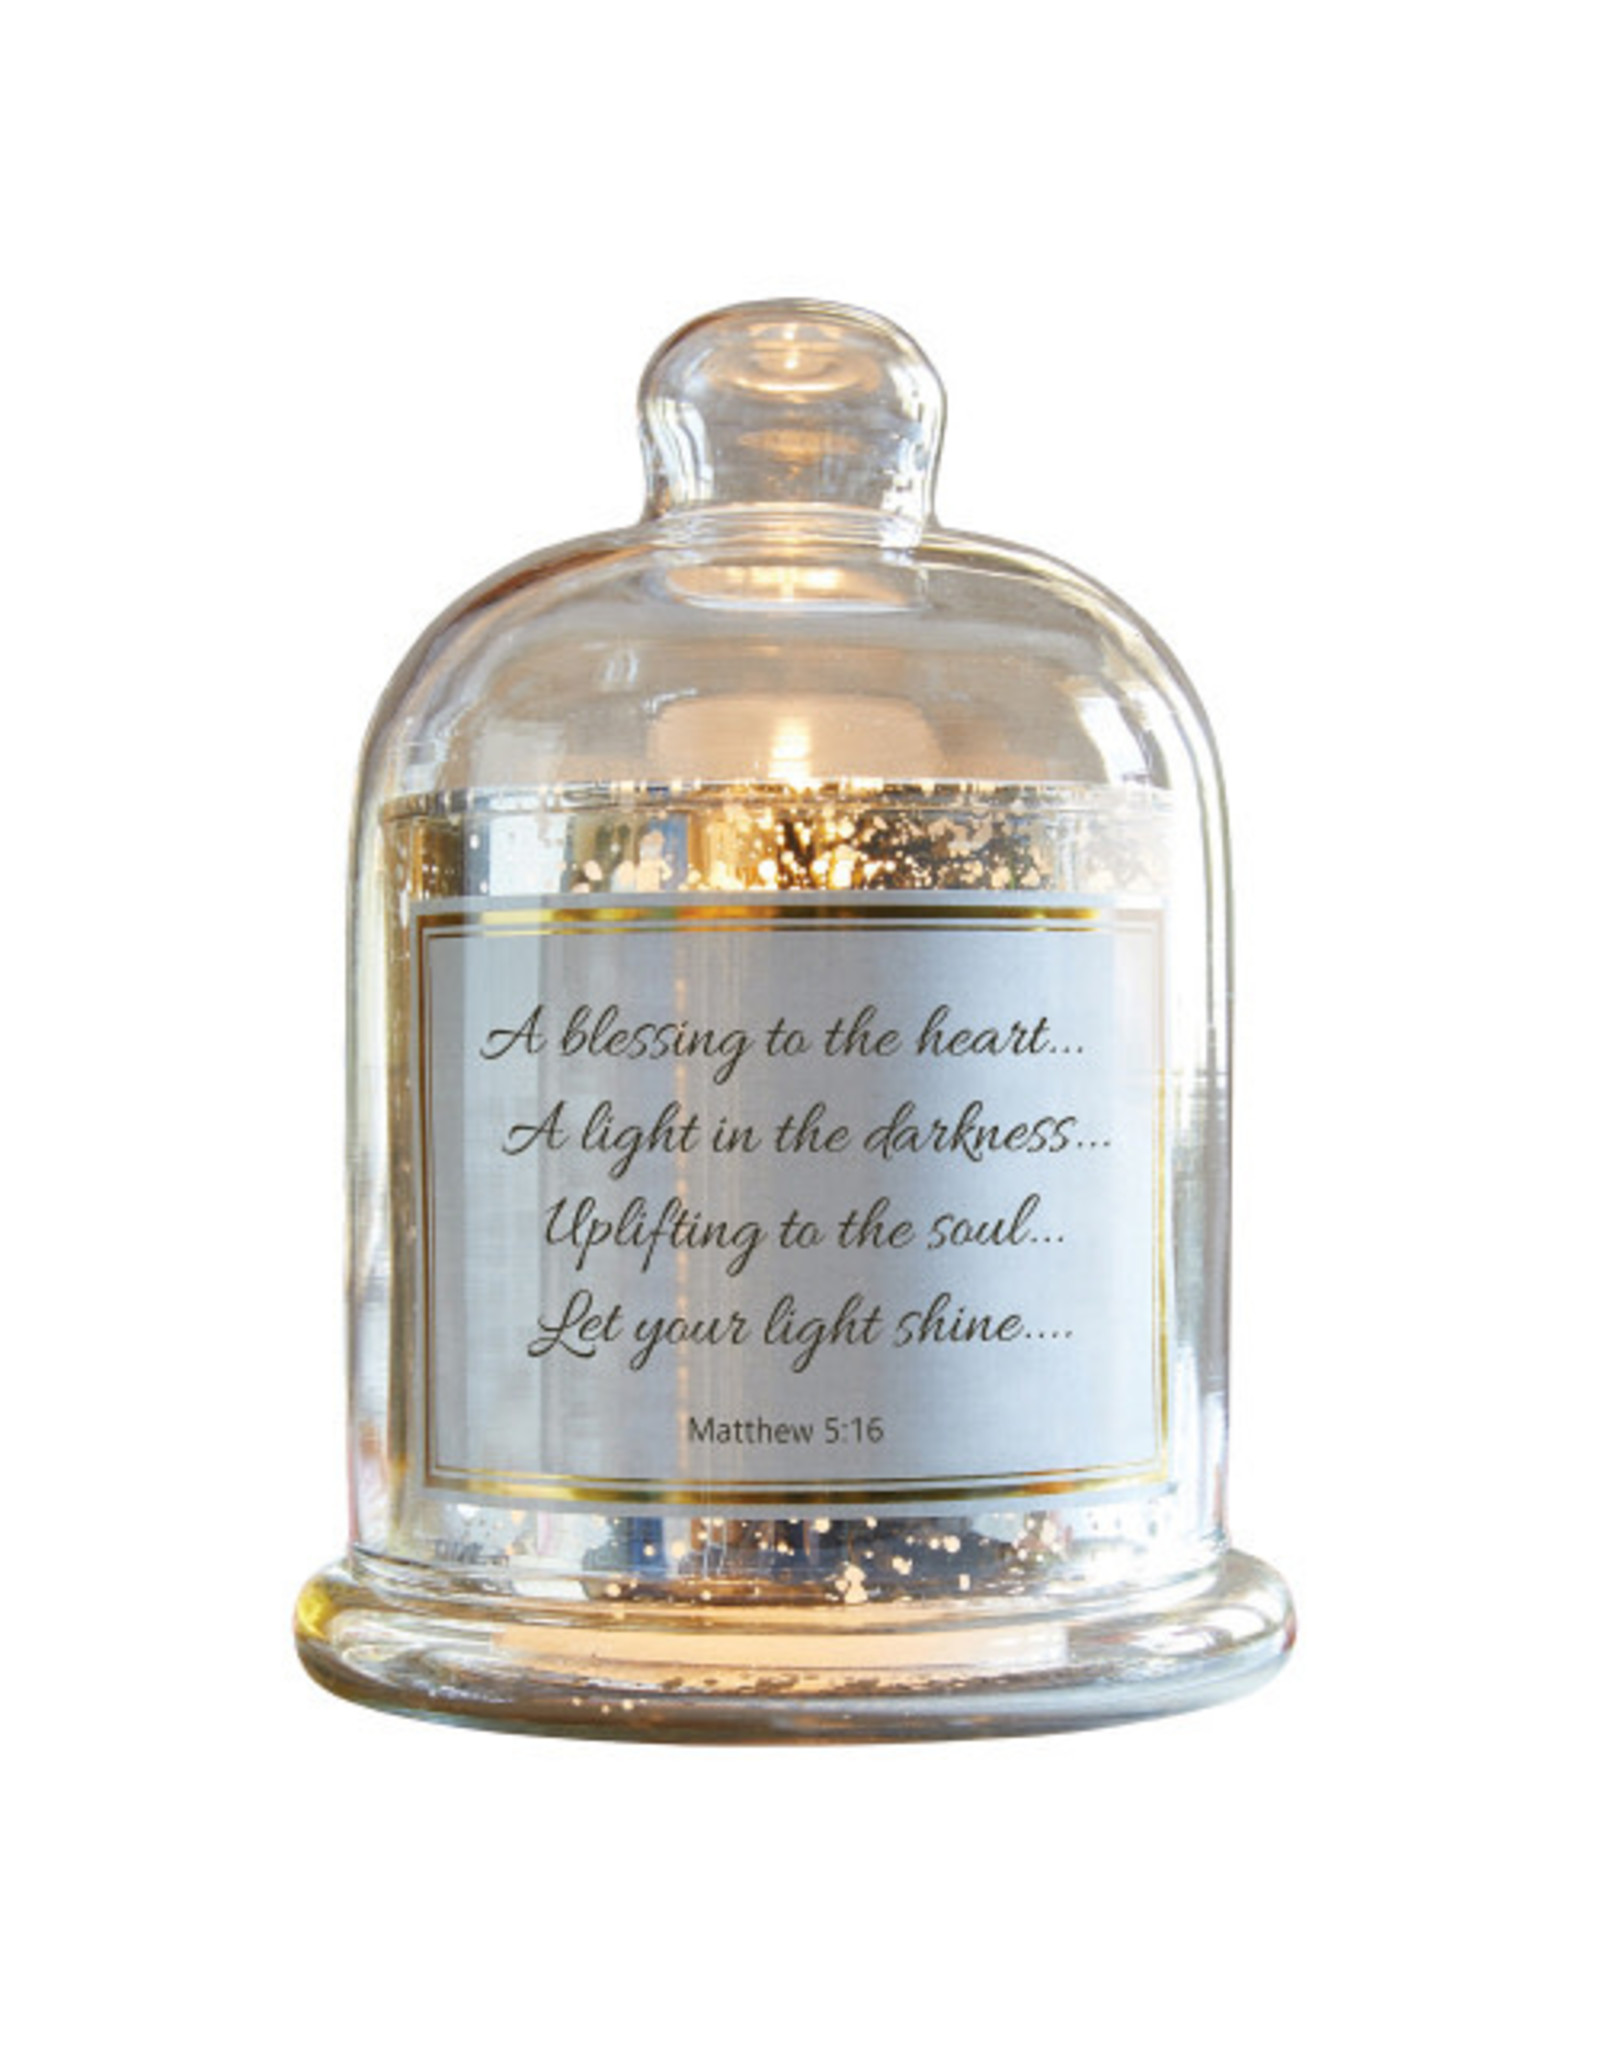 Heartfelt LED Candle Dome, A Blessing To The Heart -Matthew 5:16